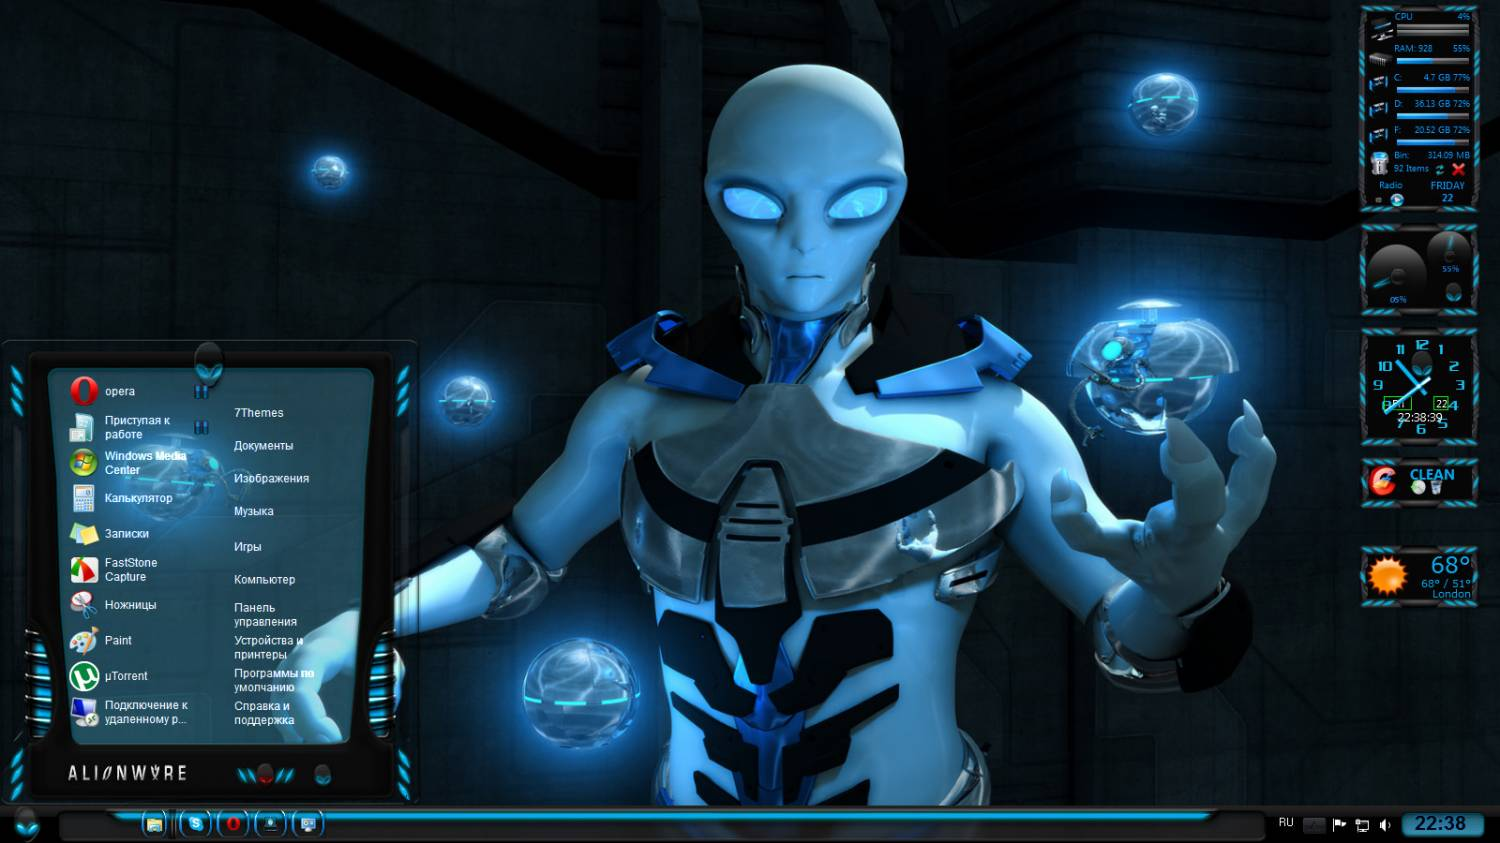 Alienware Screensavers For Windows 7 | apexwallpapers.com